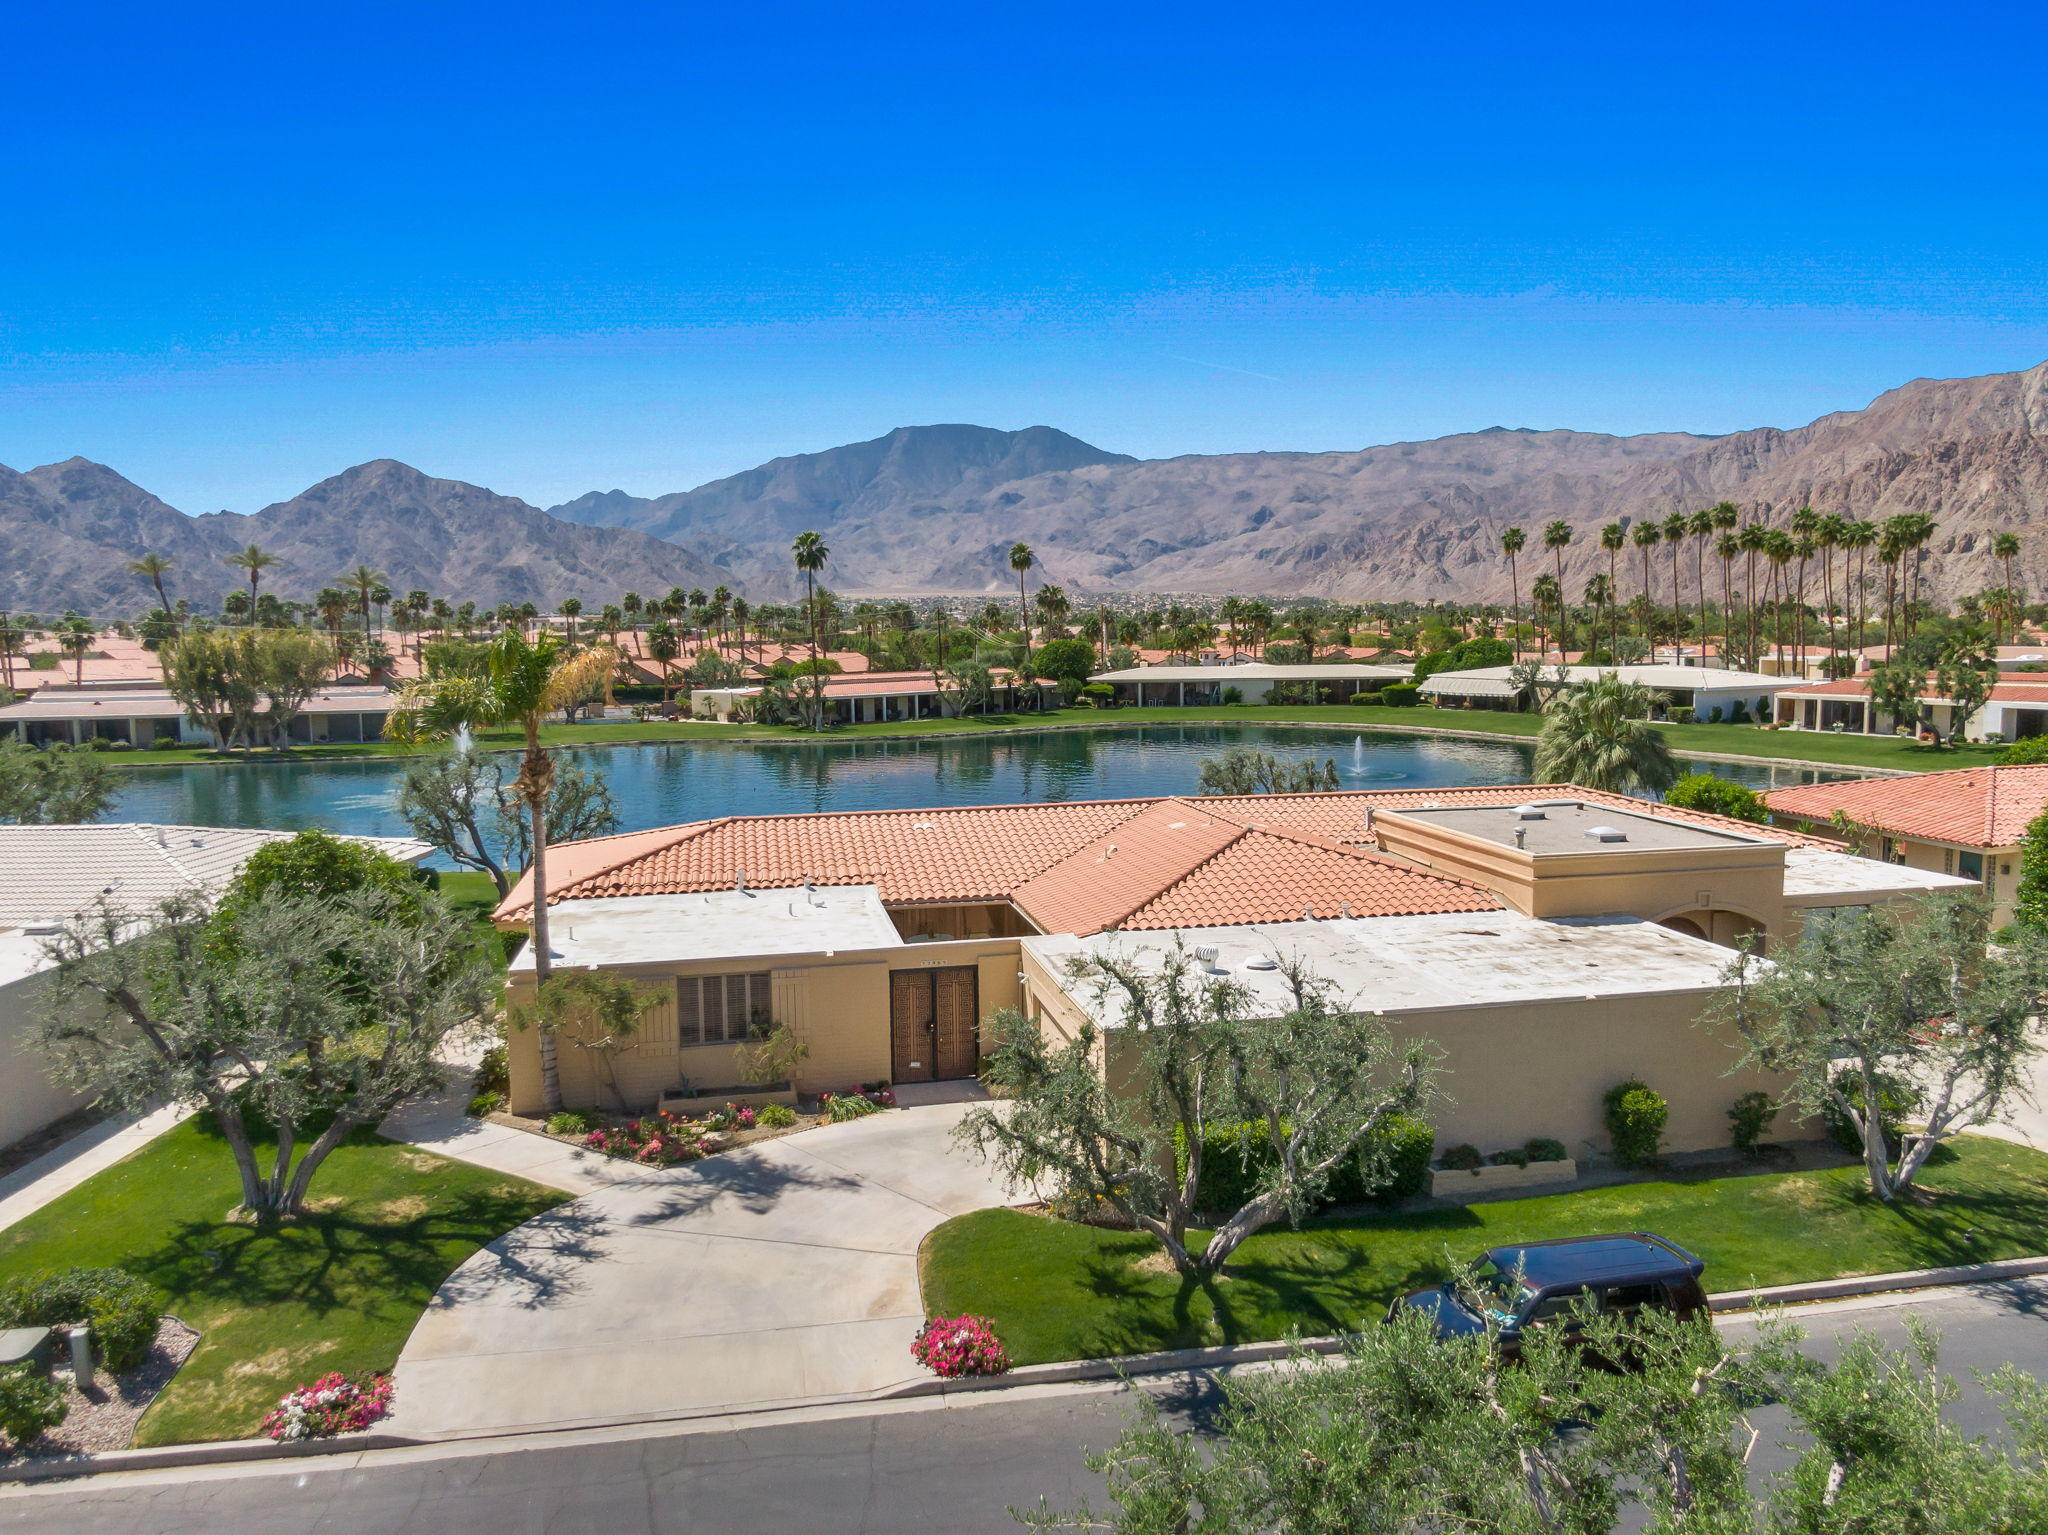 Lakefront living in the heart of La Quinta!  Nestled in the La Quinta Country Club- Lago neighborhood- this 3 Bedroom/3 Bathroom condo has incredible, panoramic lake and Santa Rosa mountain views!  Remodeled kitchen with granite, stainless appliances, and open floor plan. 9 ft ceilings throughout and windows abound with the lake and courtyard views bringing in light in every room. South facing with a sunny patio and views from the living room and primary bedroom.  Spacious courtyard brings in light to the other 2 guest rooms, ensuite, and one with a cozy fireplace.  Located at La Quinta Country Club, close to the clubhouse, Old Town La Quinta, and the La Quinta Resort!  Come see it today!